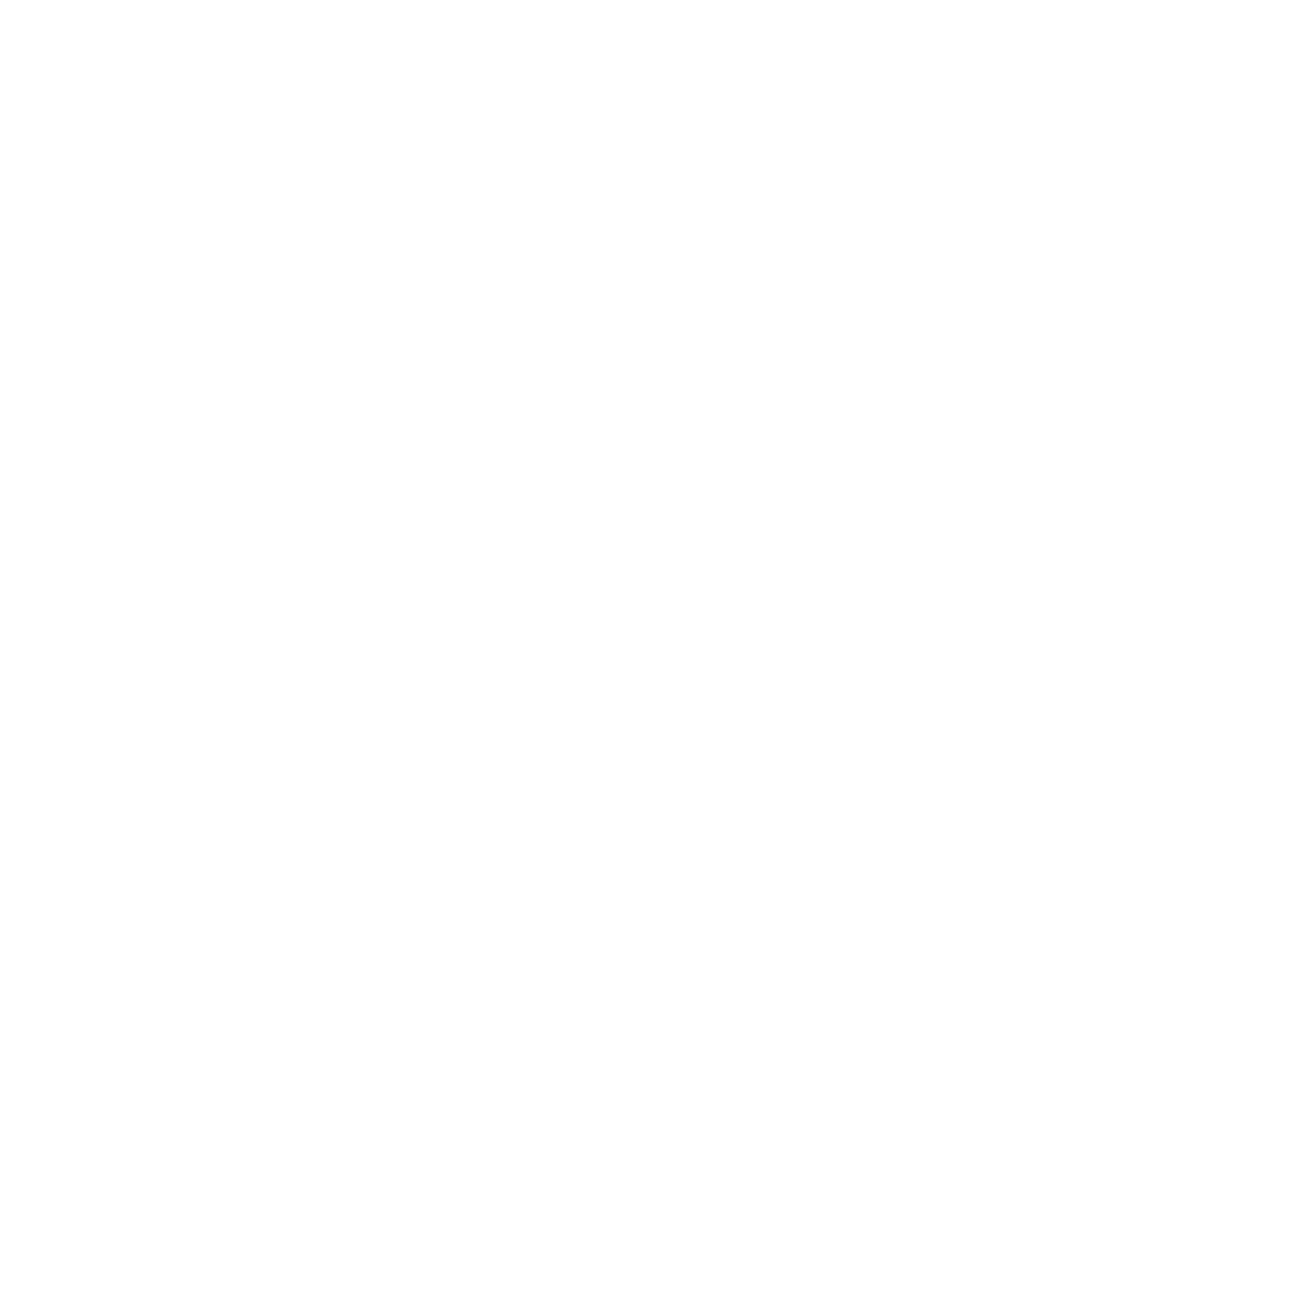 REAL GOOD STUFF co.